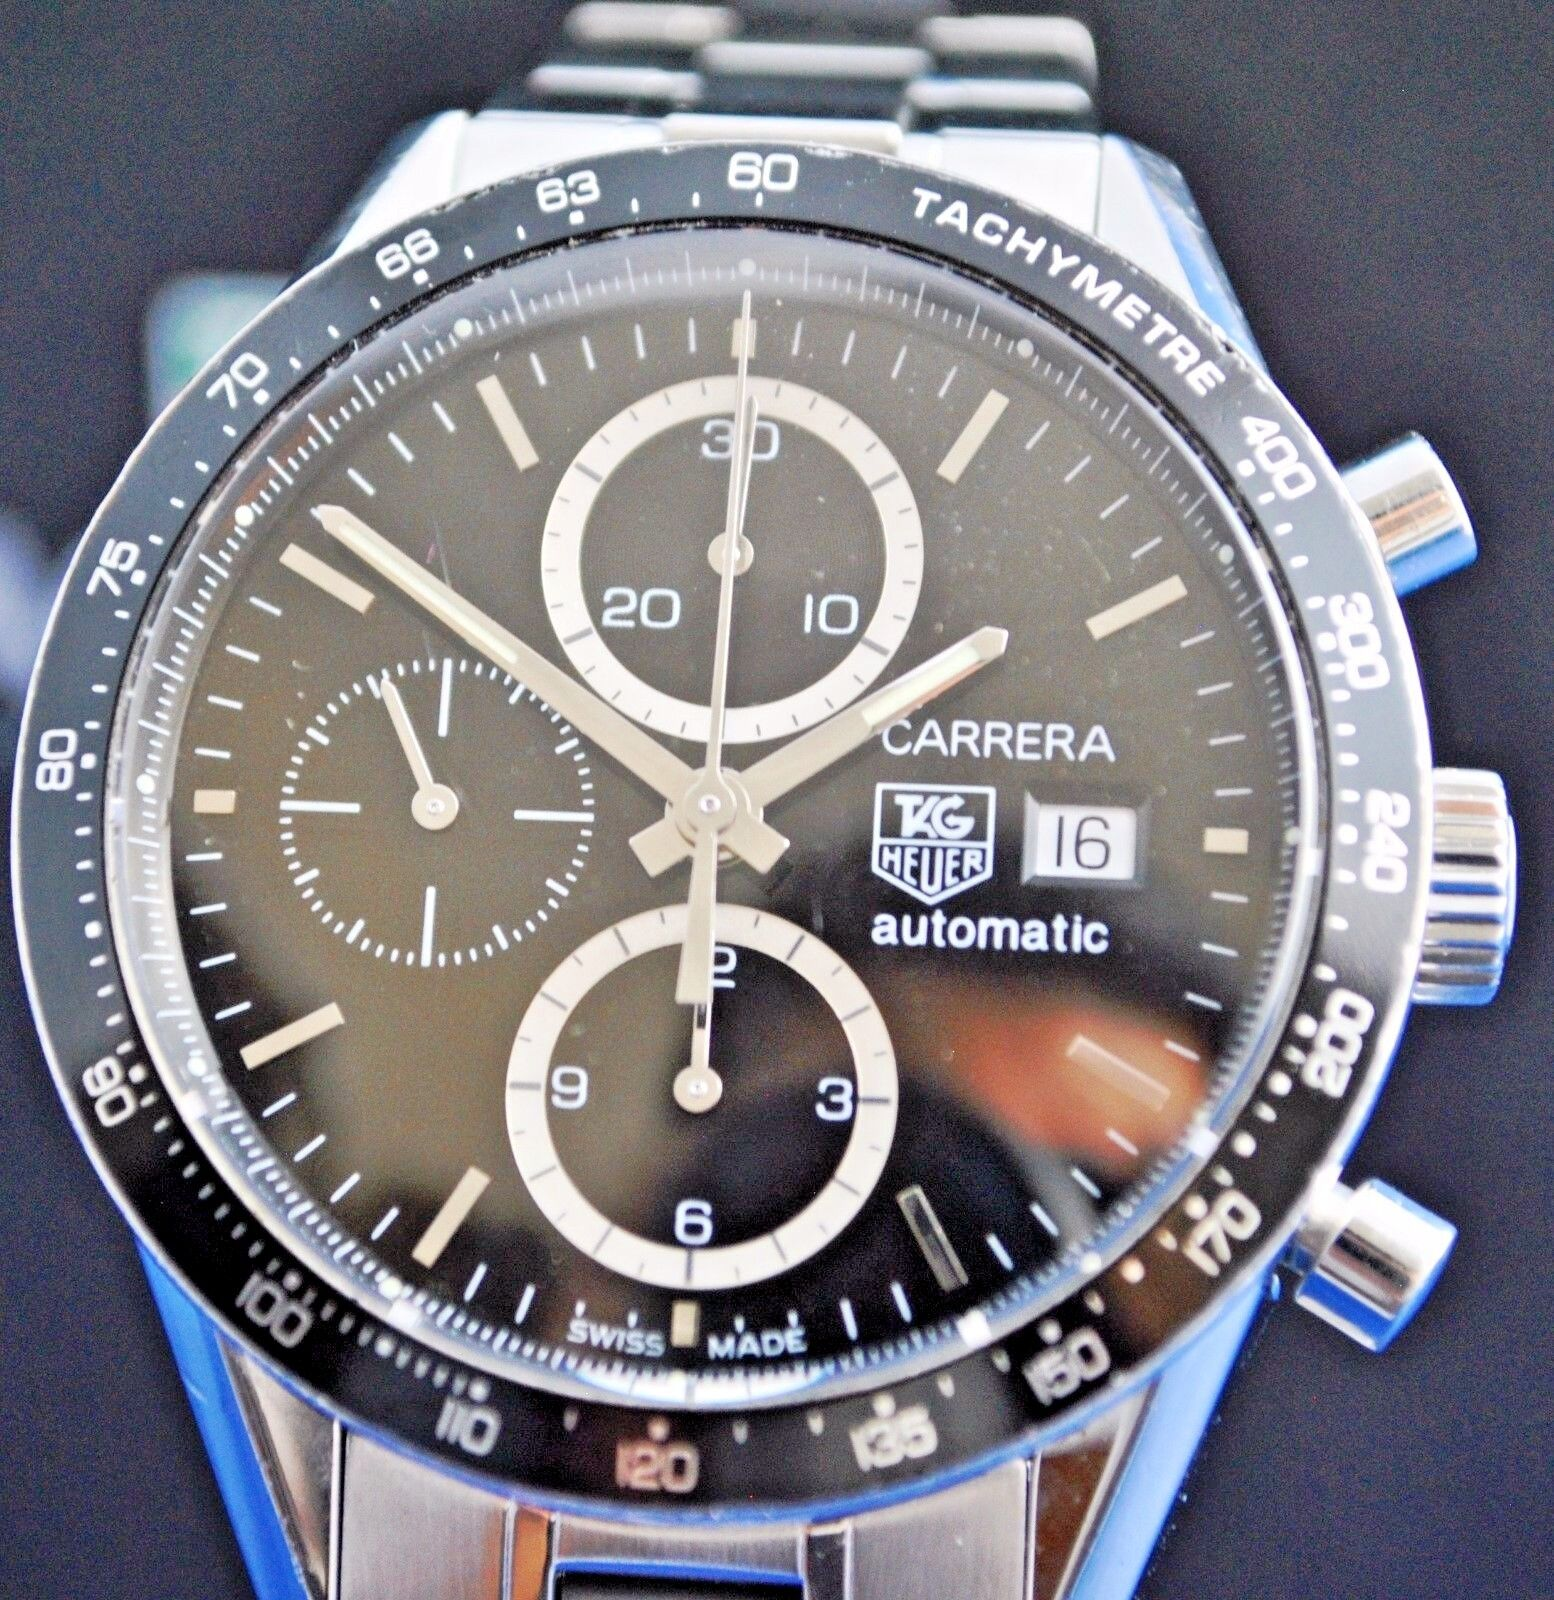 Tag Heuer Carrera CV2010-3 Automatic Chronograph Cal 16 Stainless steel watch - watch picture 1